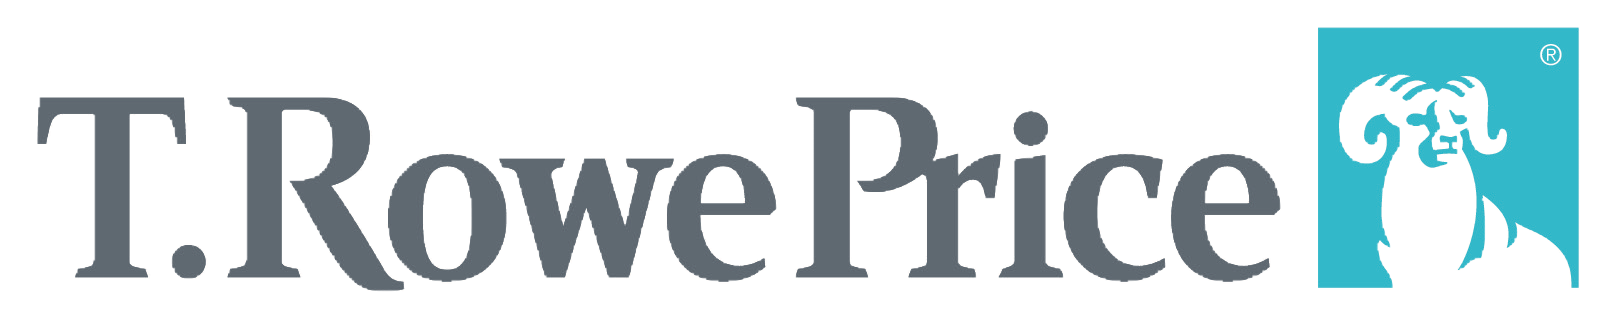 Logo - T. Rowe Price 2.png